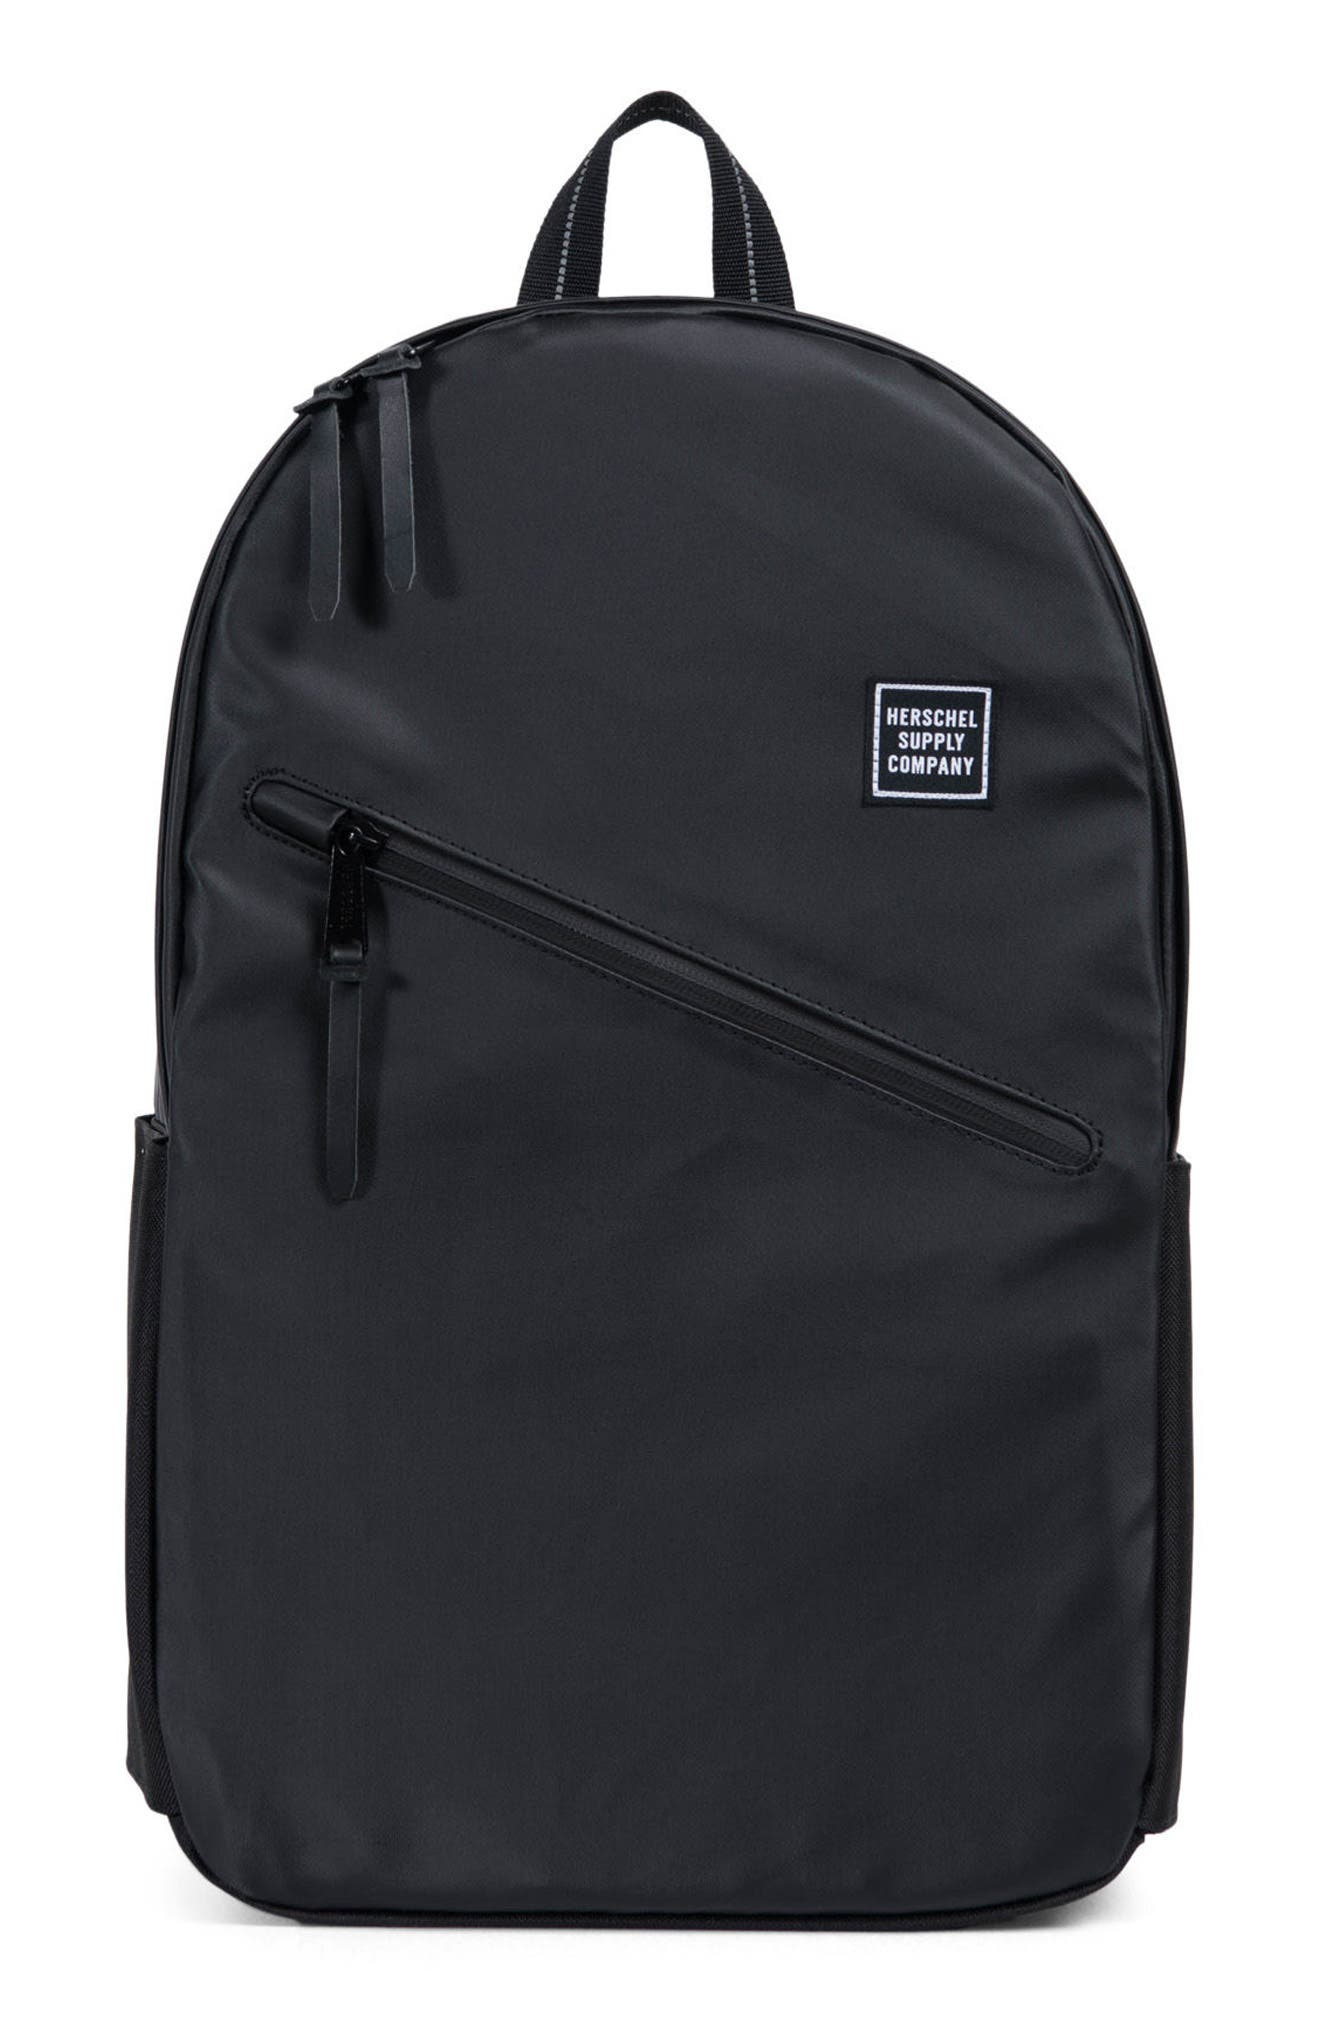 Herschel Supply Co. Parker Studio Collection Backpack